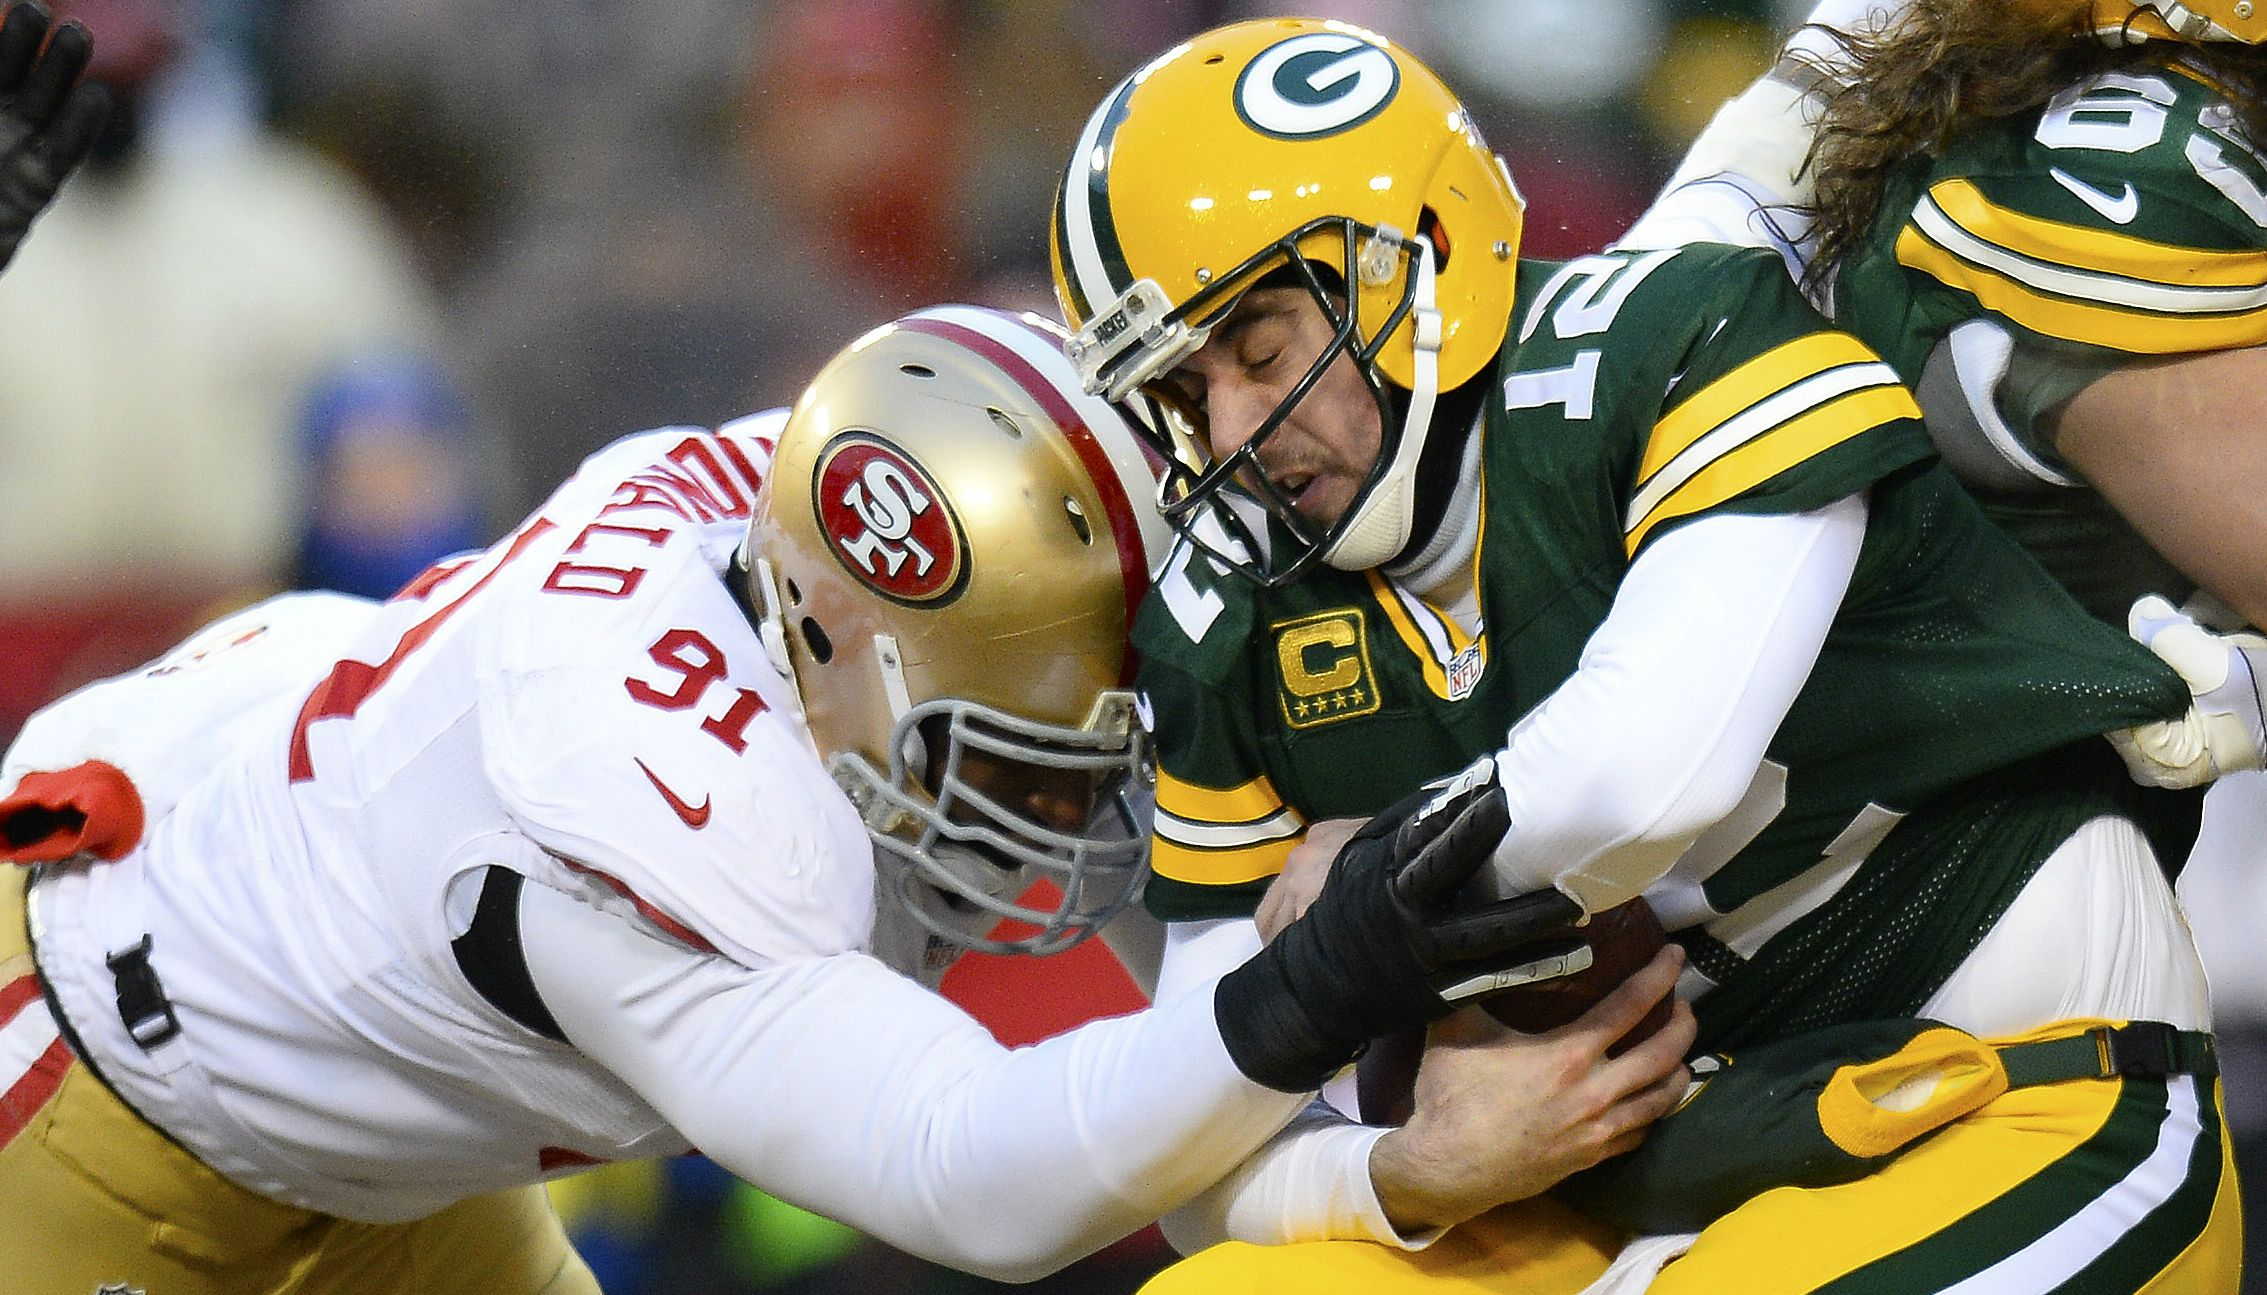 Aaron Rodgers getting sacked...Always awesome Image Courtesy of Fox News